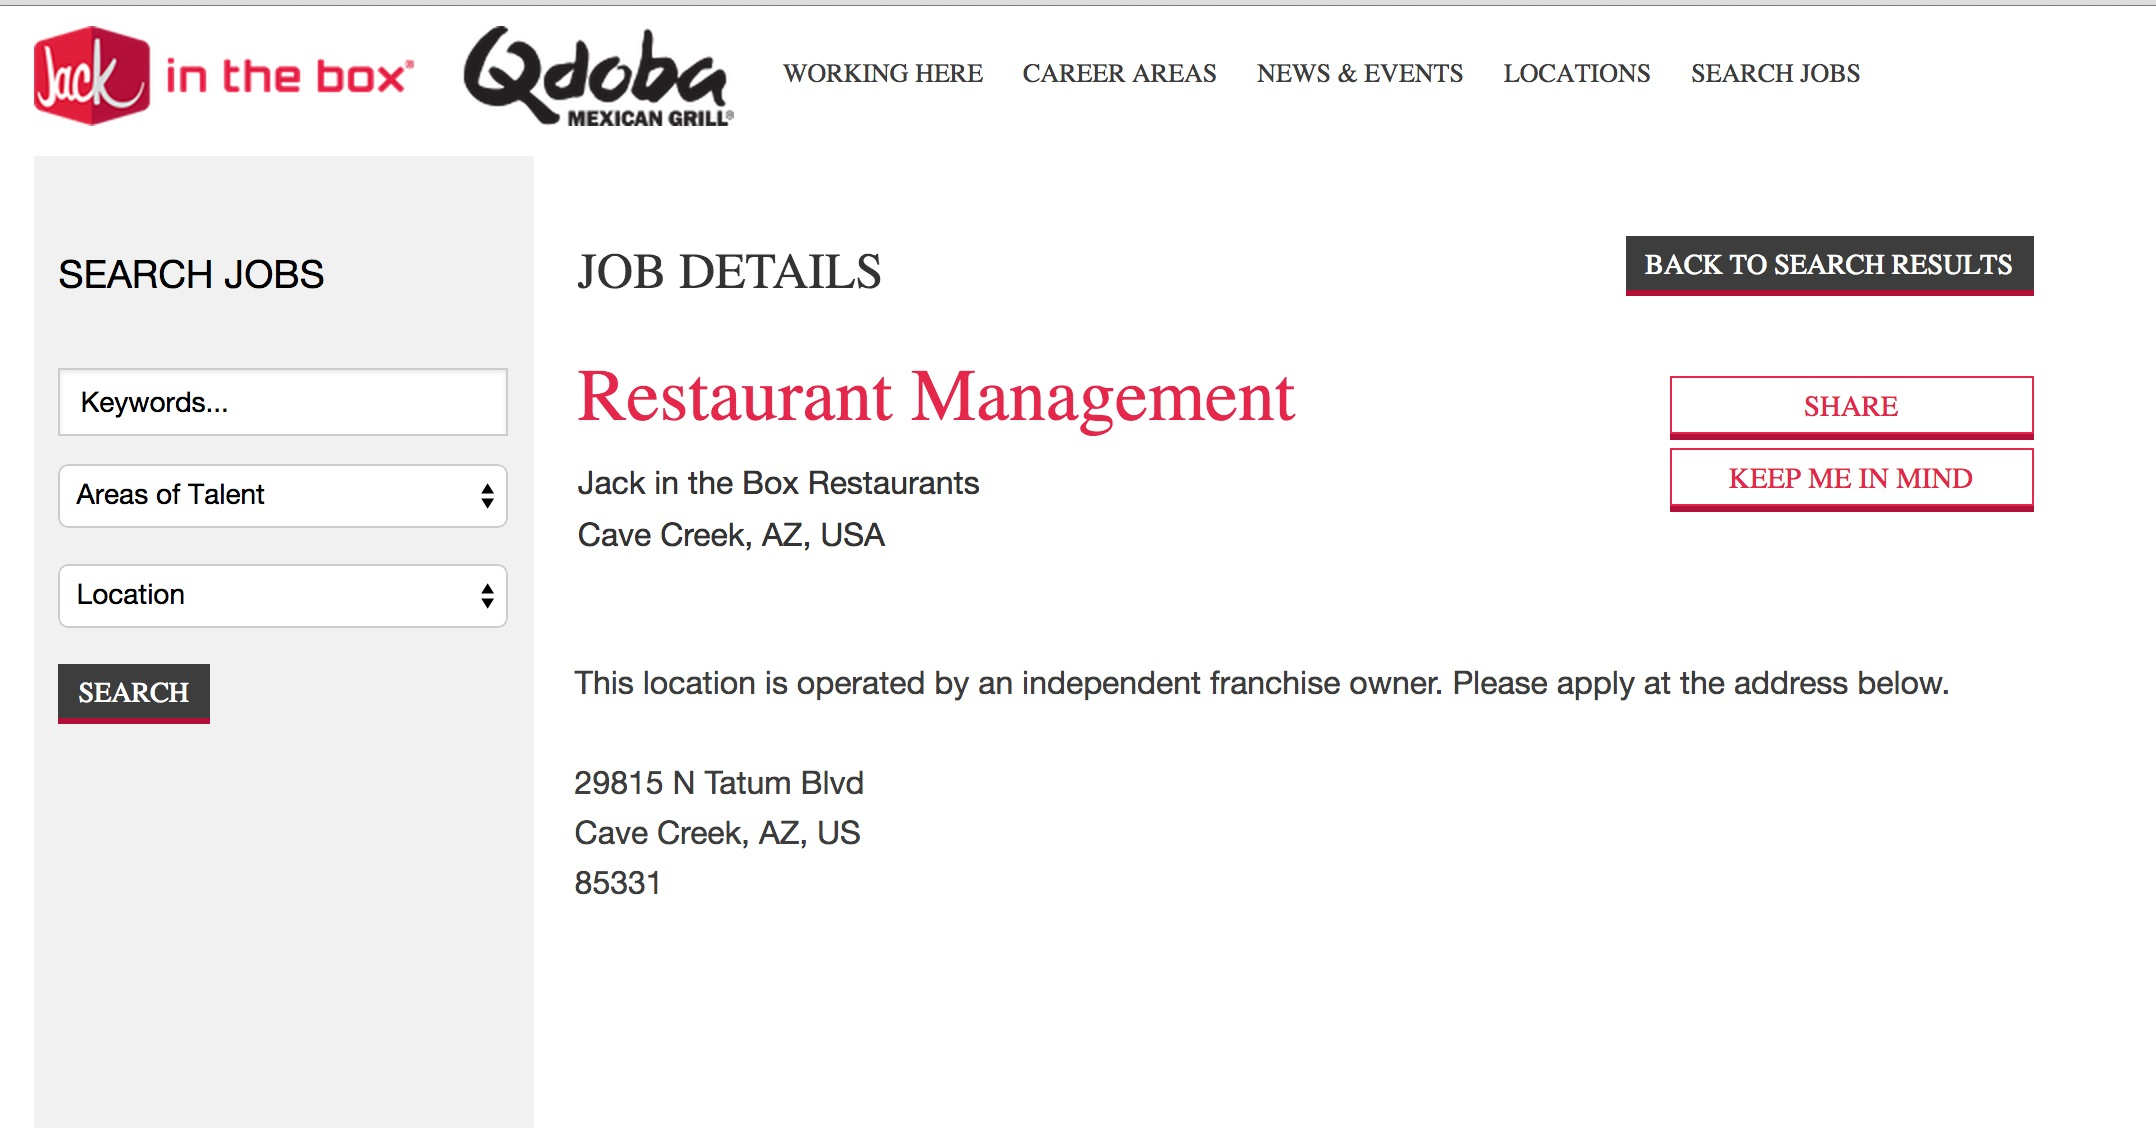 Download Jack-in-the-Box Job Application Form | Adobe PDF wikiDownload